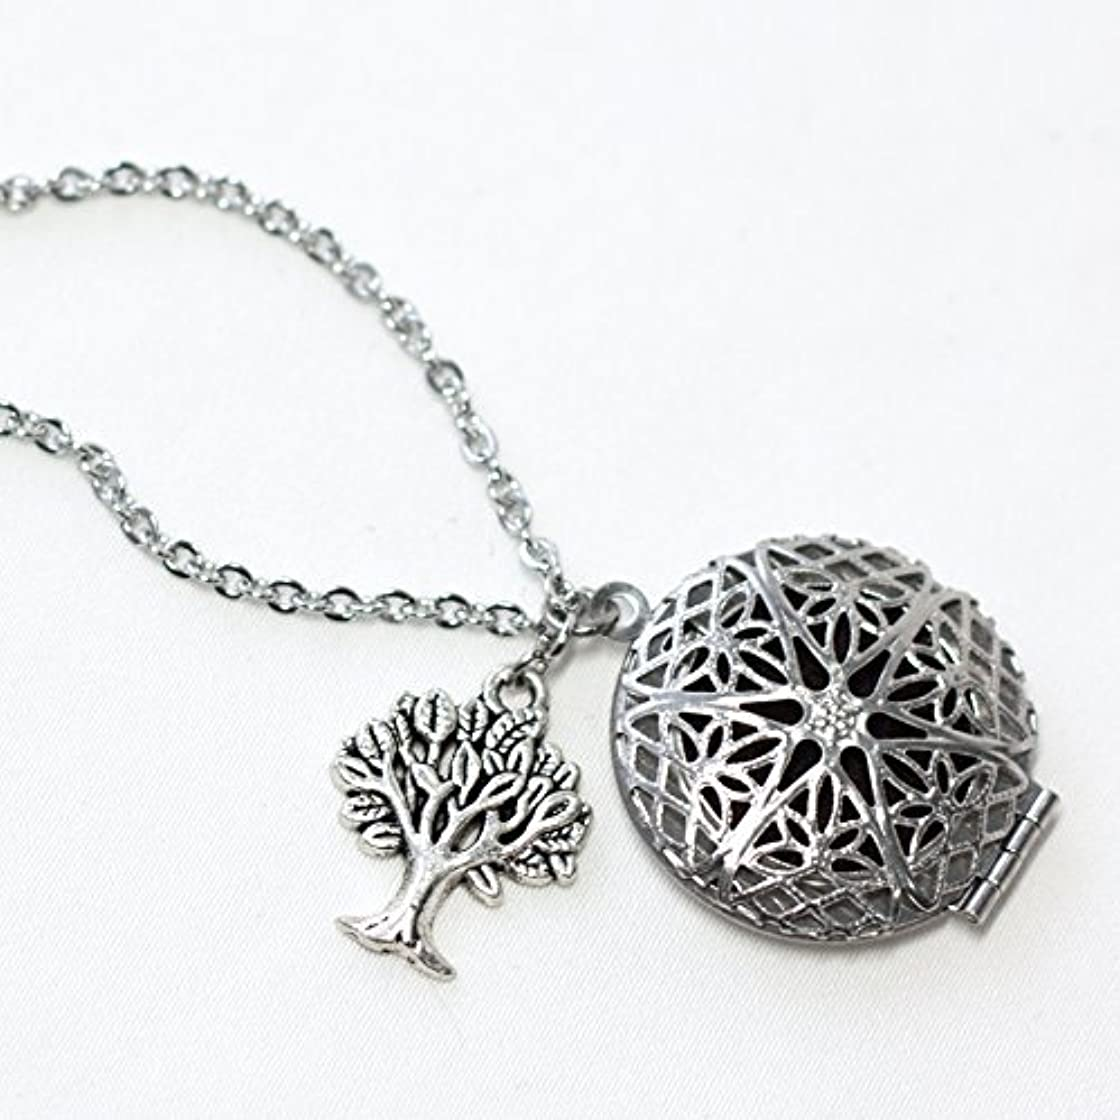 同時迷路宣言するTree Diffuser Necklace for Essential Oils 18 inches with felt pads [並行輸入品]